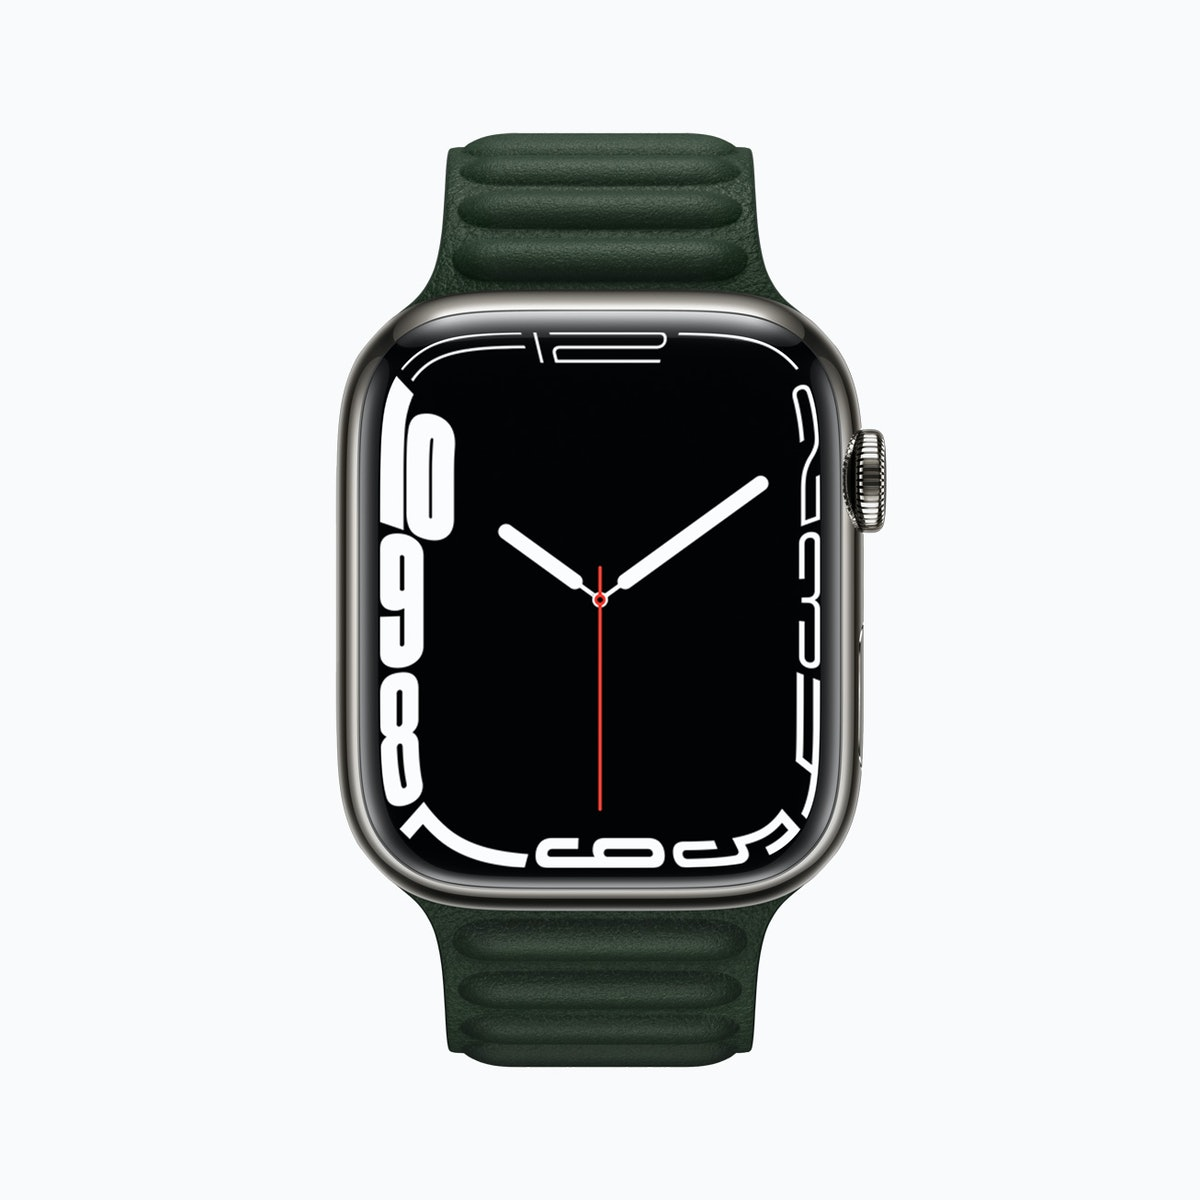 Apple Watch Series 7 with Contour face. How the Apple Watch series 7 is different from the 6.